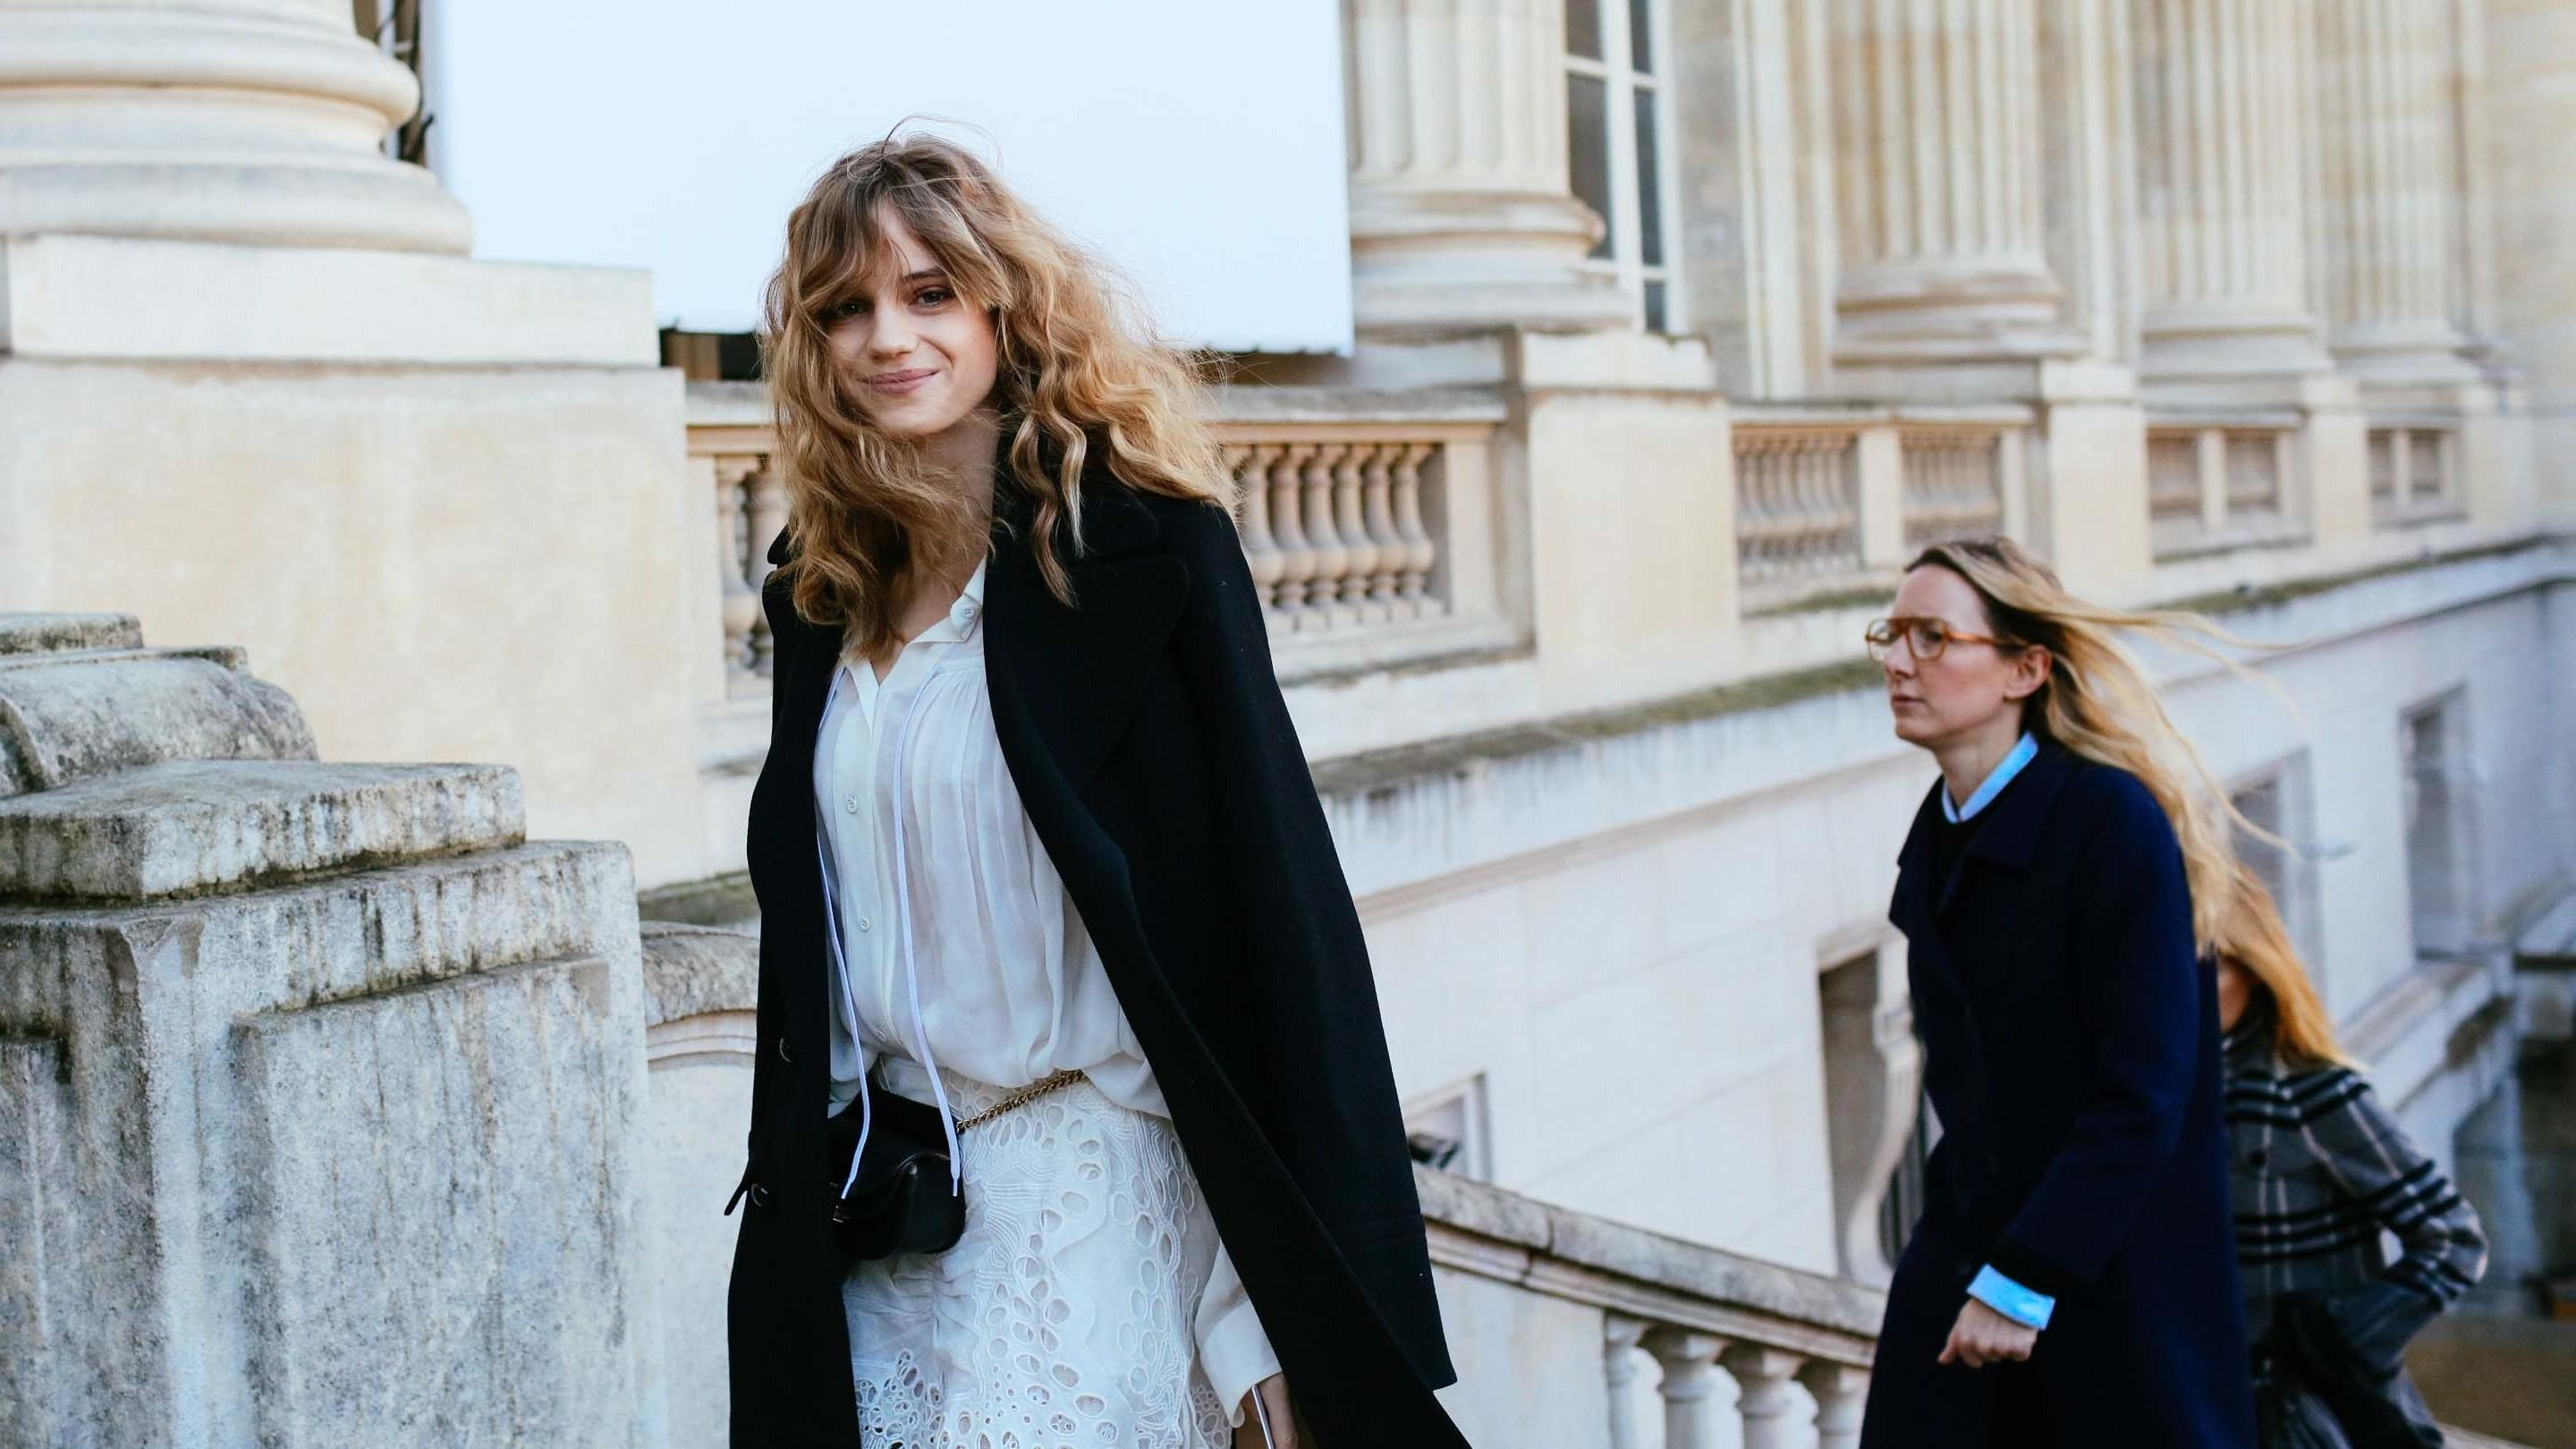 Curly Hair Dominates Paris Street Style Beauty Scene